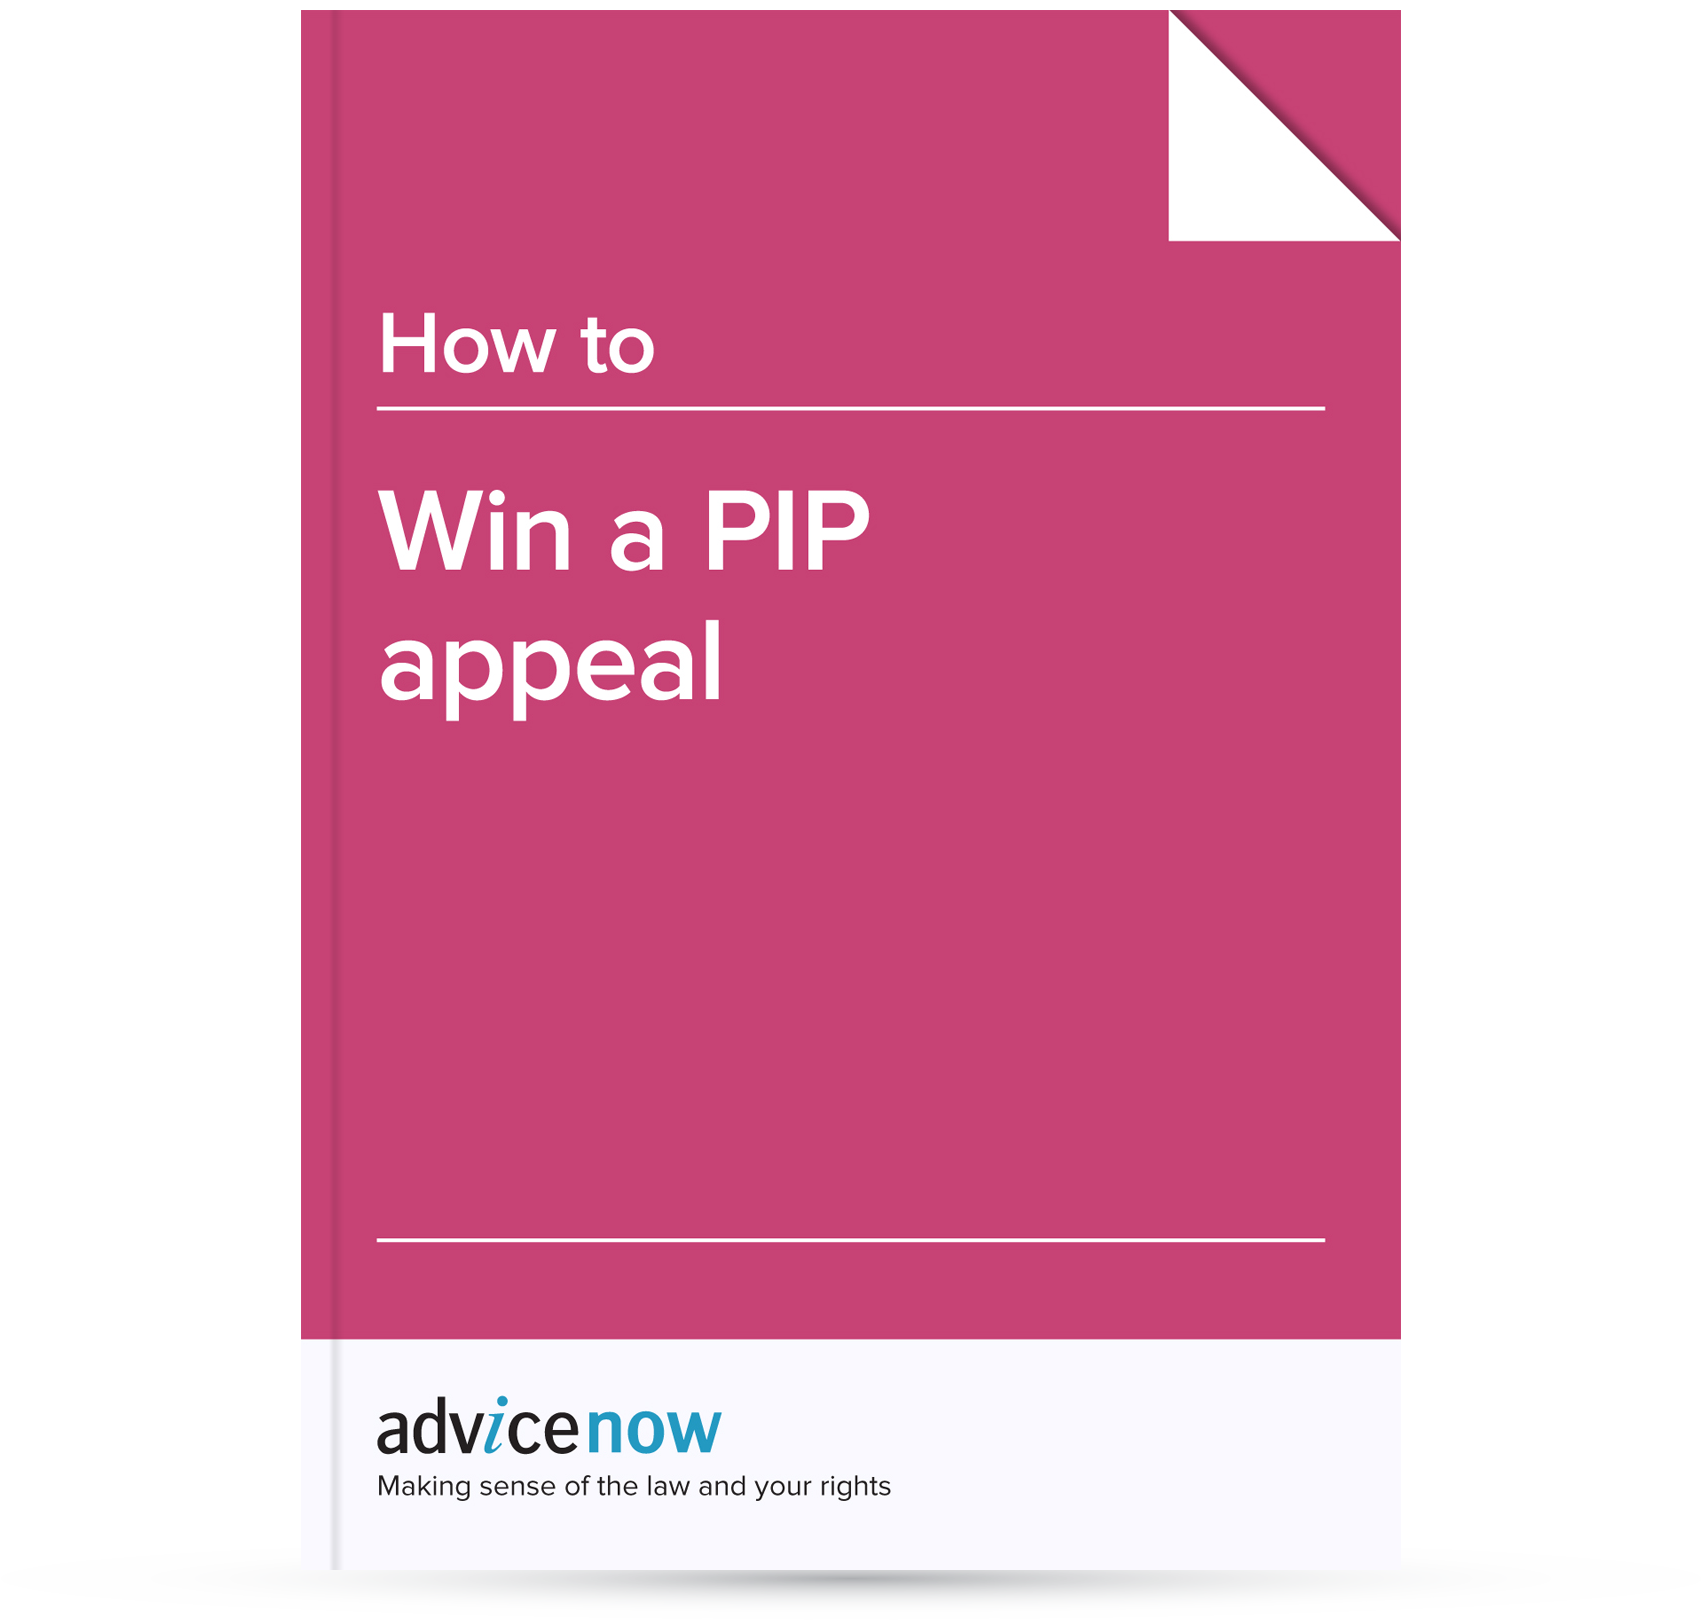 How to win a pip appeal advicenow spiritdancerdesigns